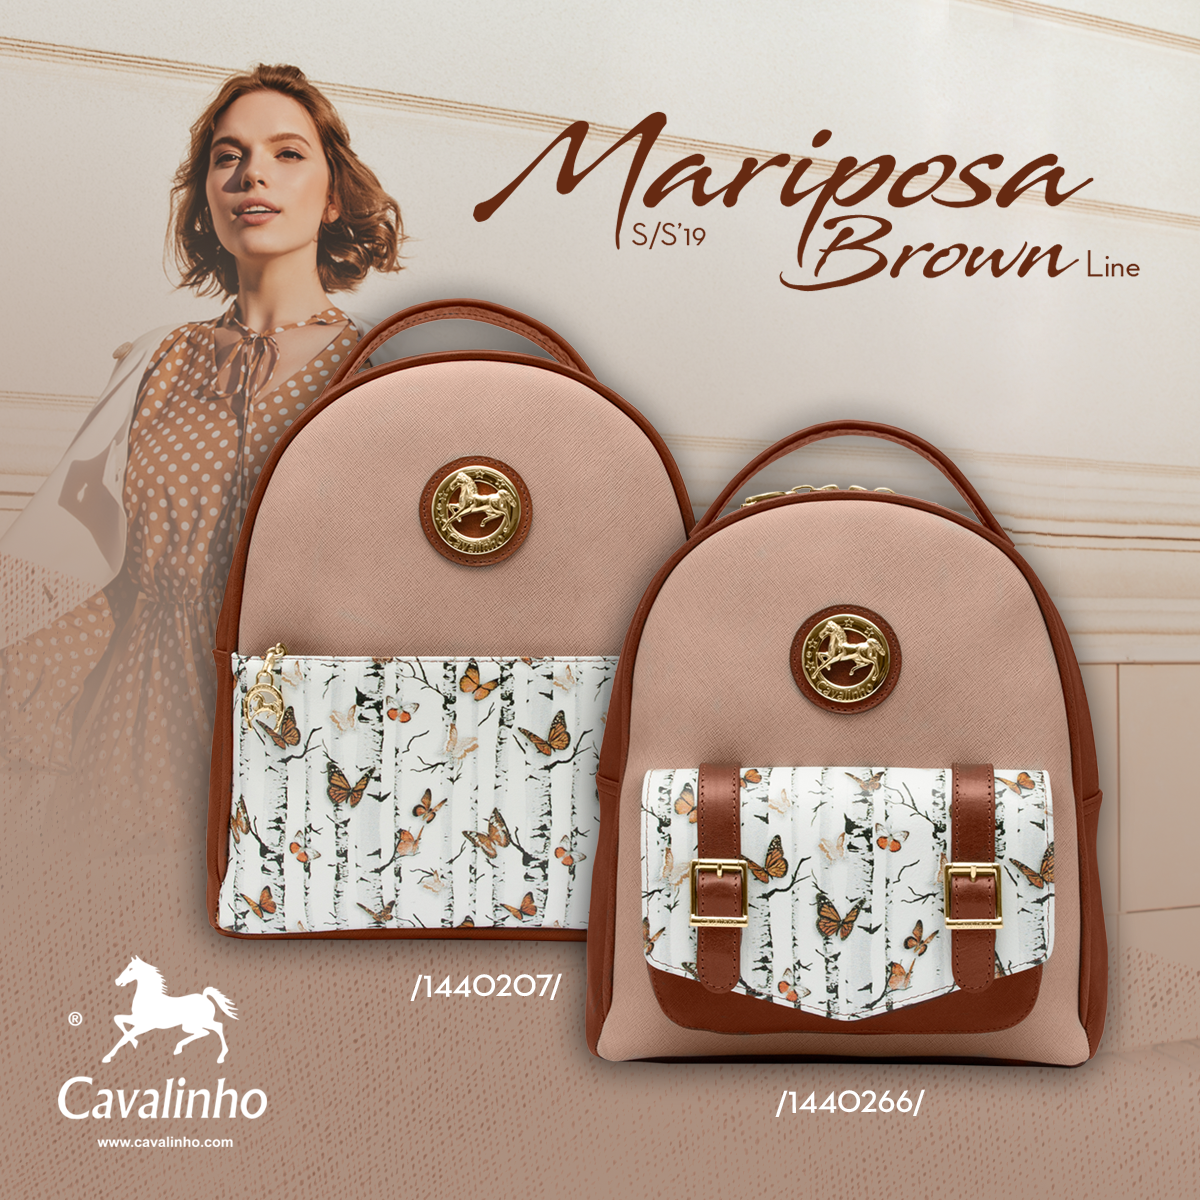 mariposa_brown_04